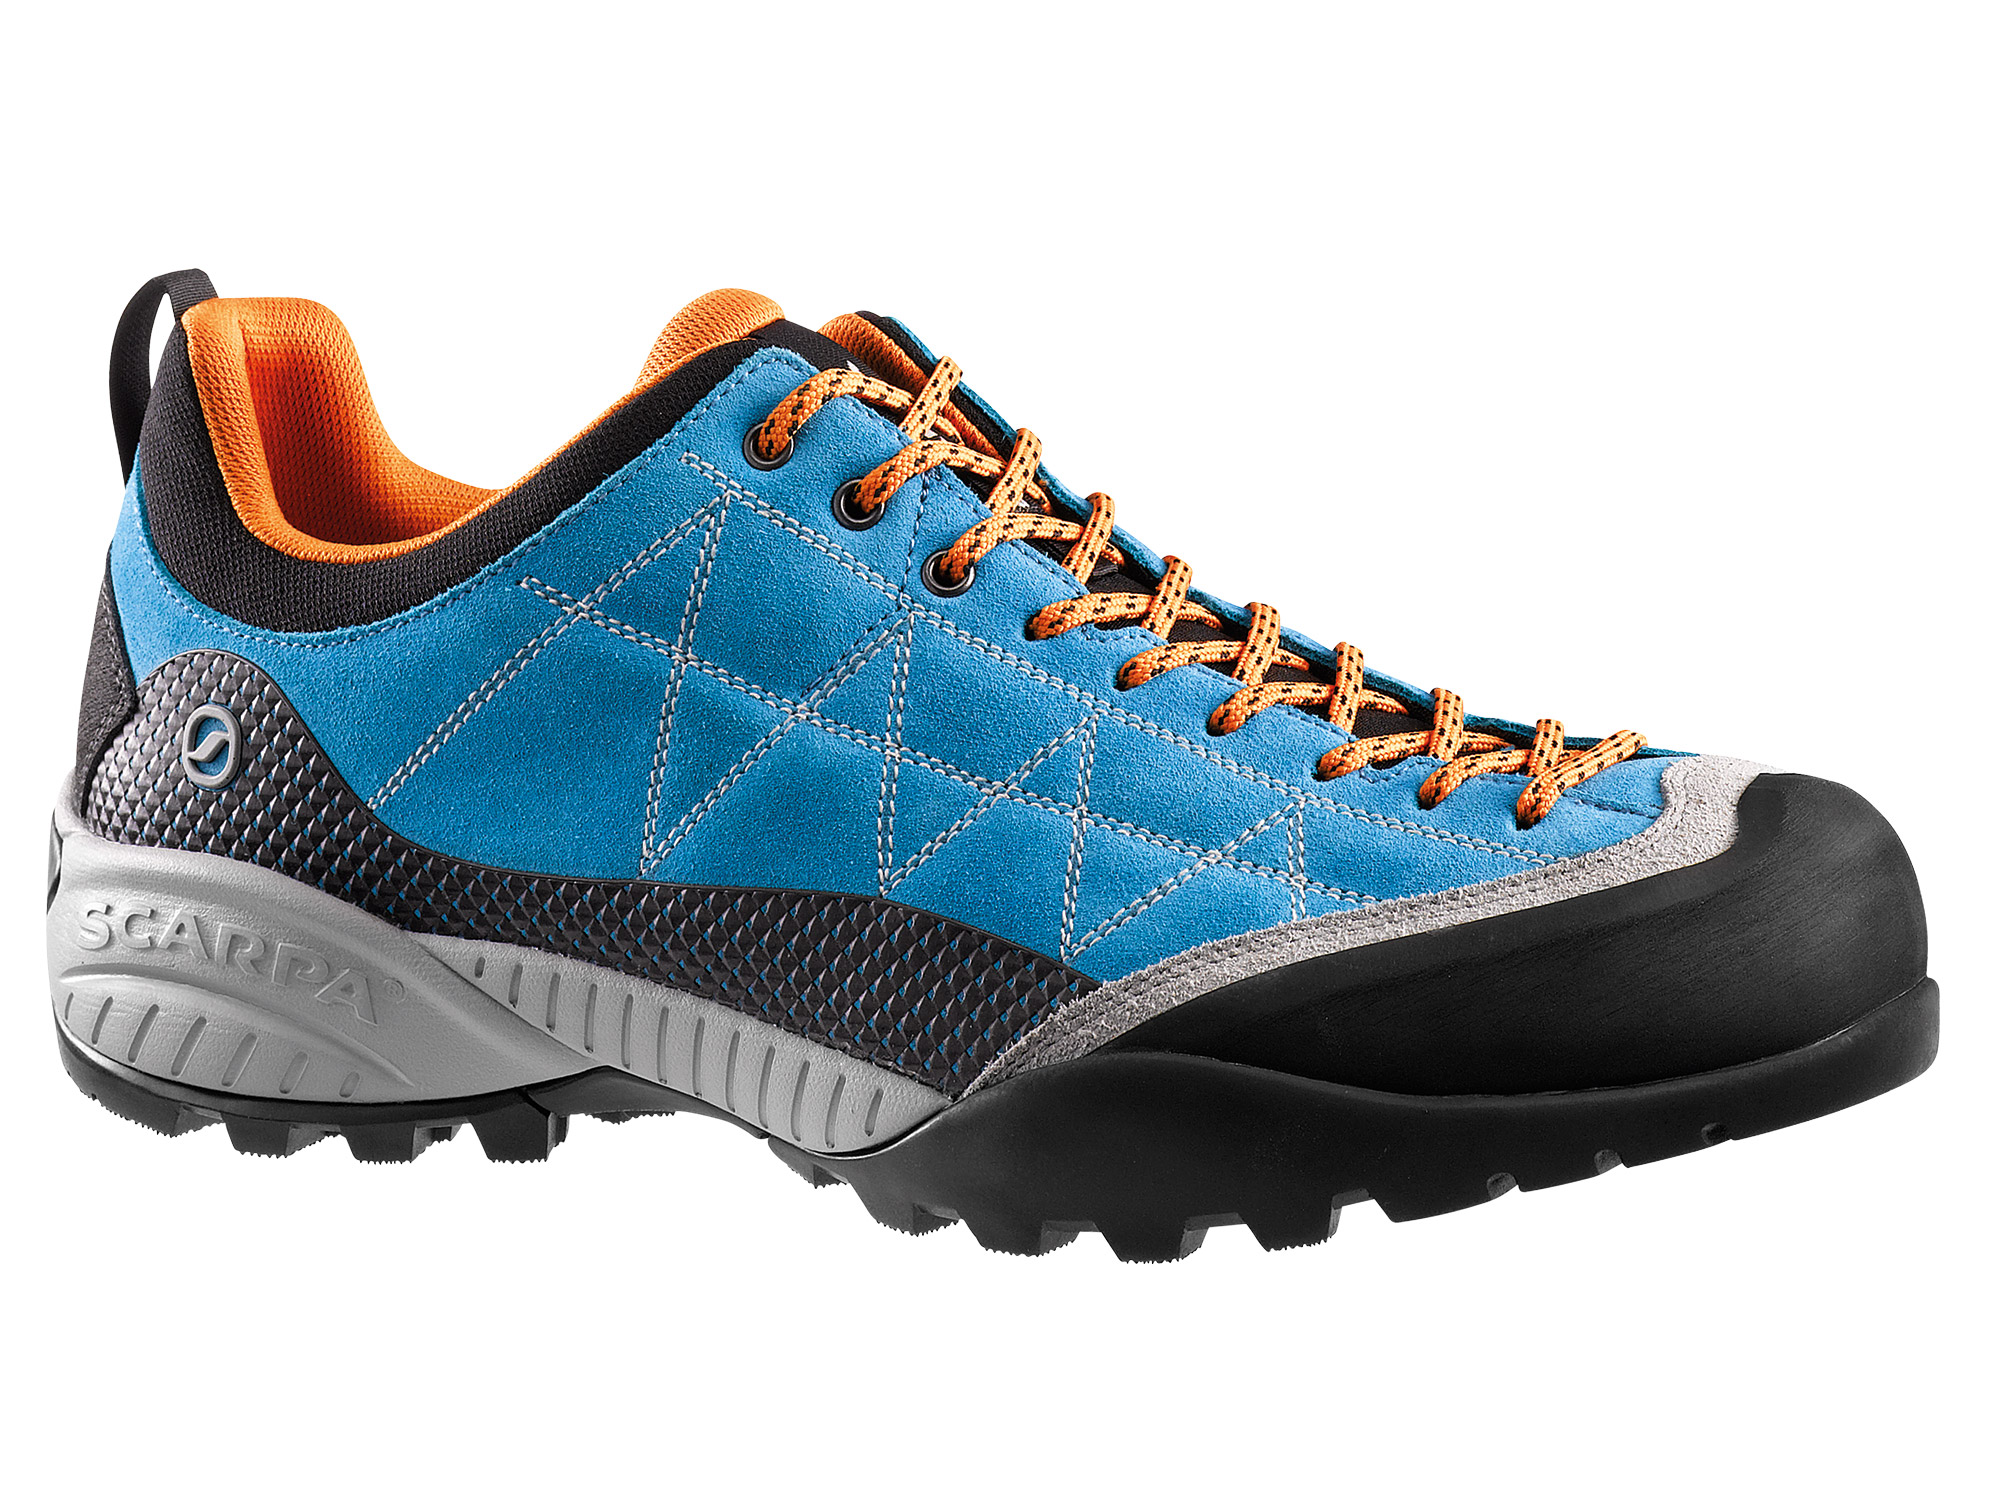 Scarpa - Zen Pro Azure-Orange - Approach Shoes - 47